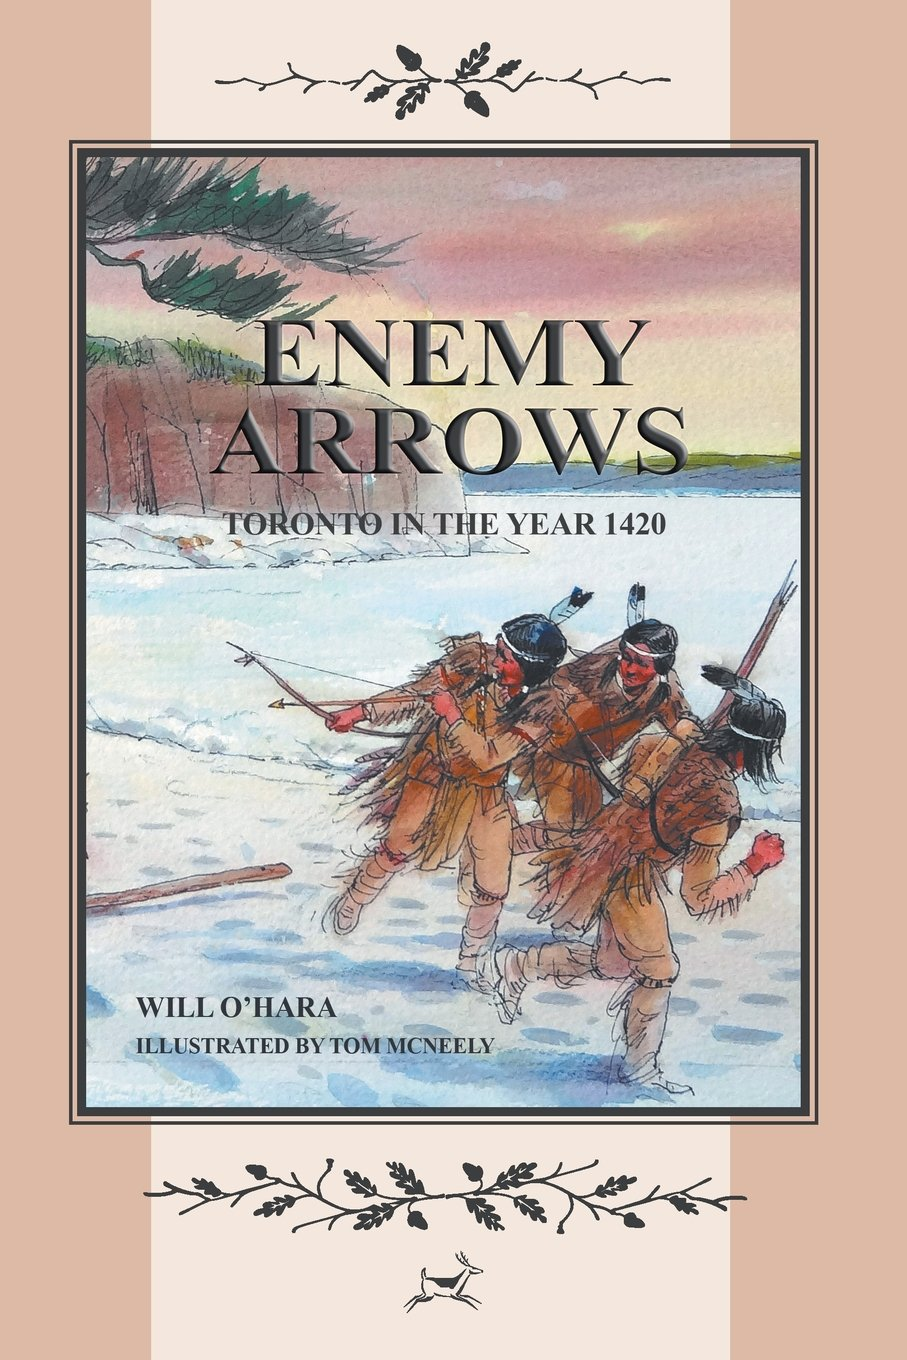 ENEMY ARROWS: TORONTO IN THE YEAR 1420